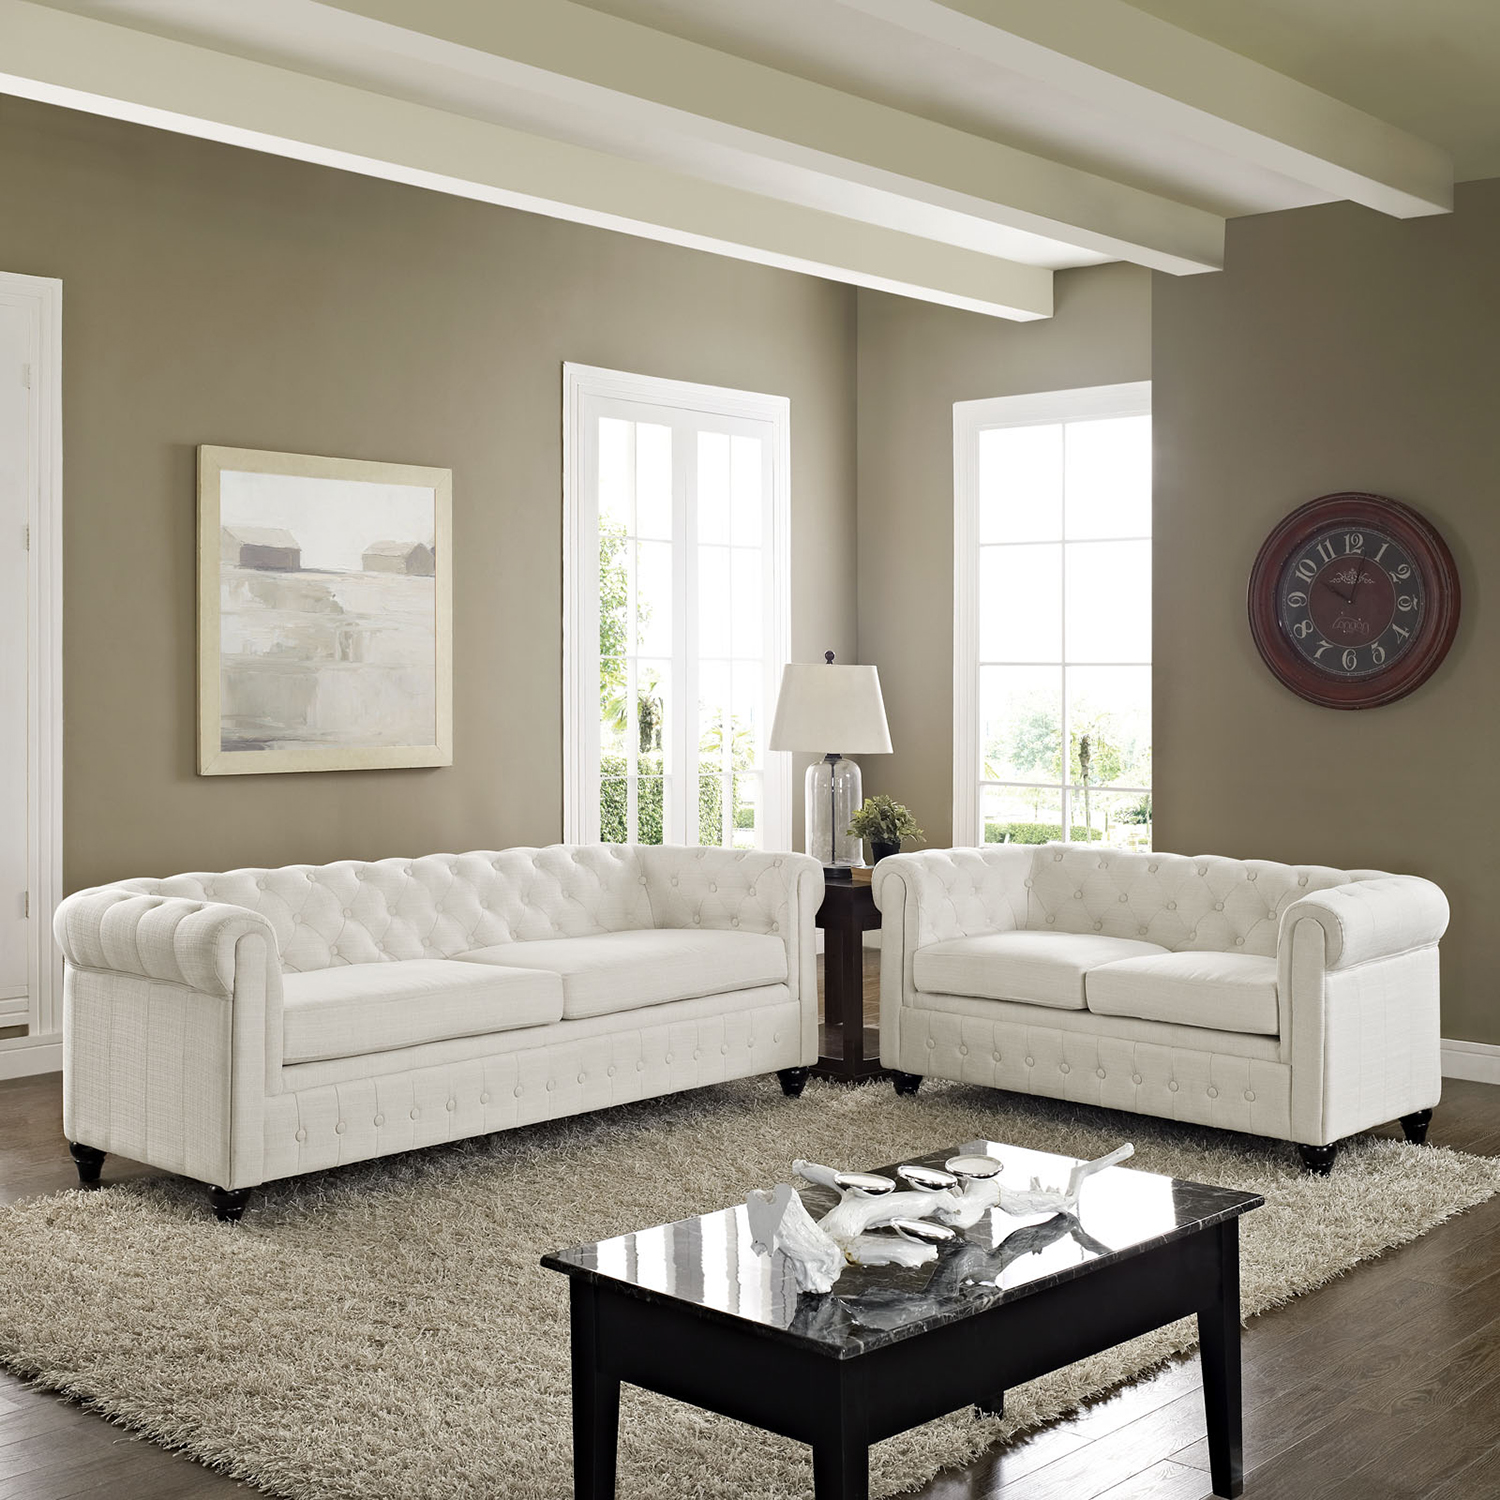 Earl 2 Pieces Fabric Sofa Set - Button Tufted, Turned Legs, Beige - EEI-1780-BEI-SET